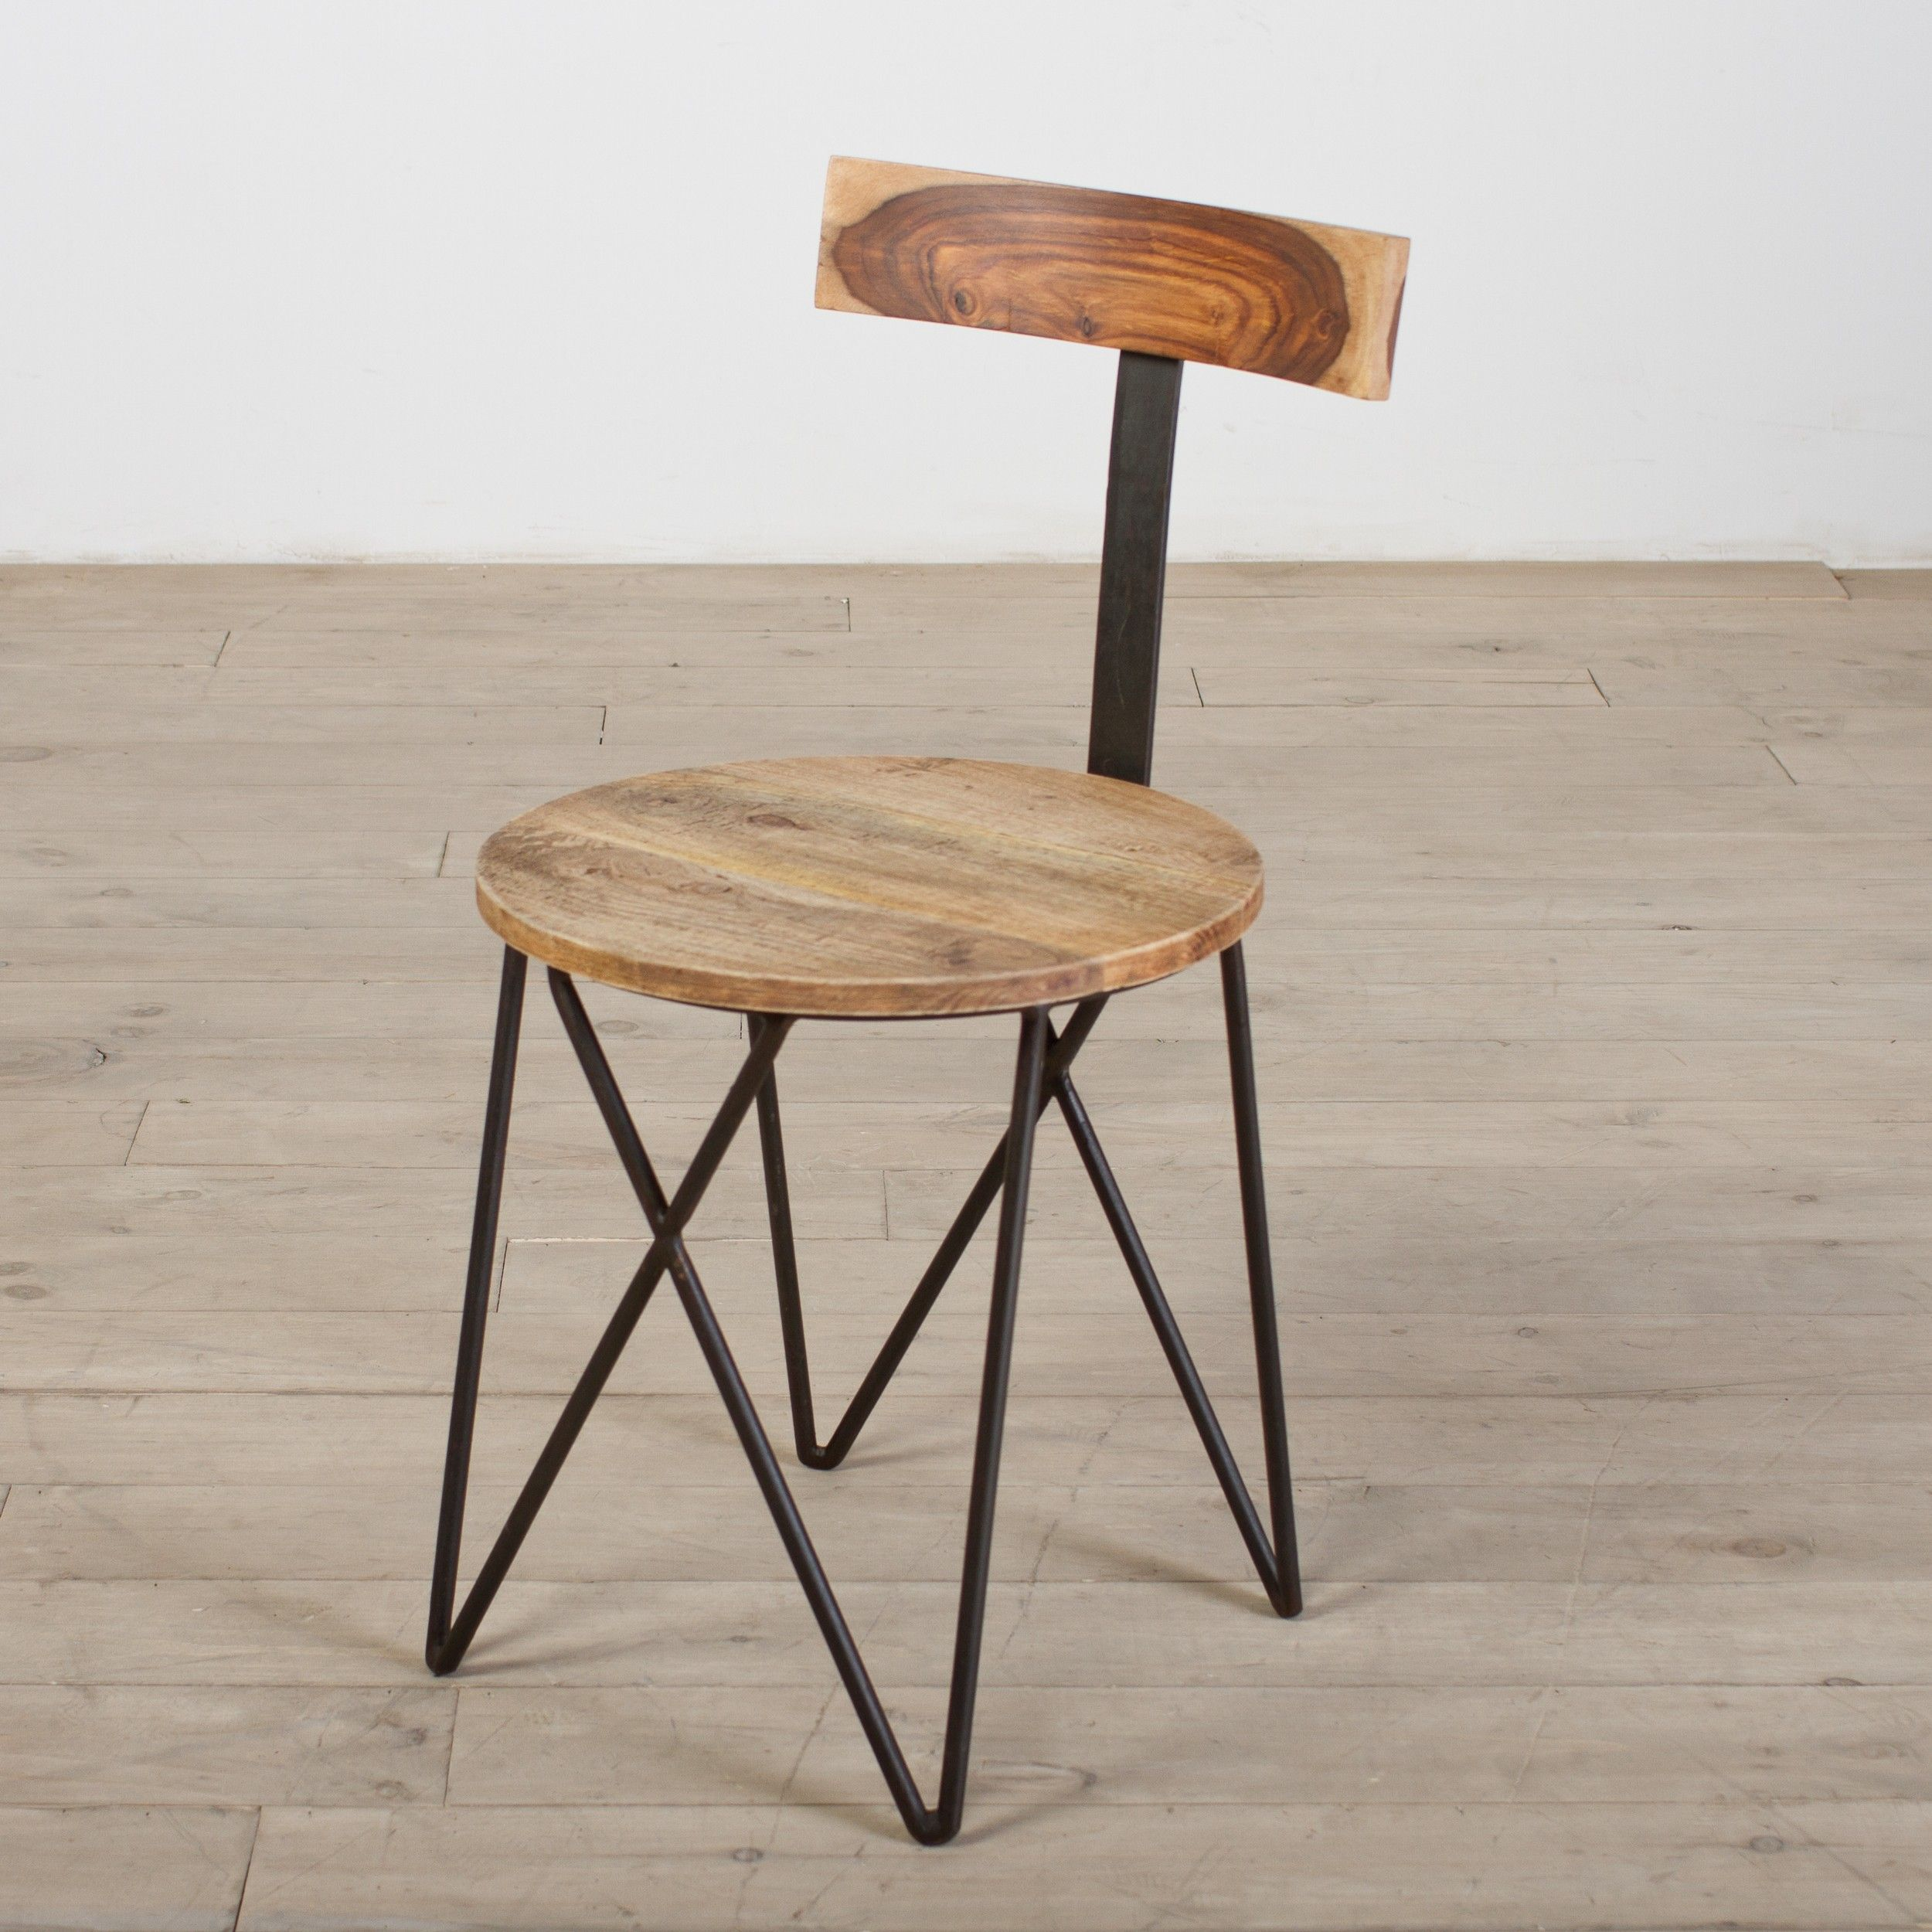 130 Dudhwa Wooden Chair All Things Awesome